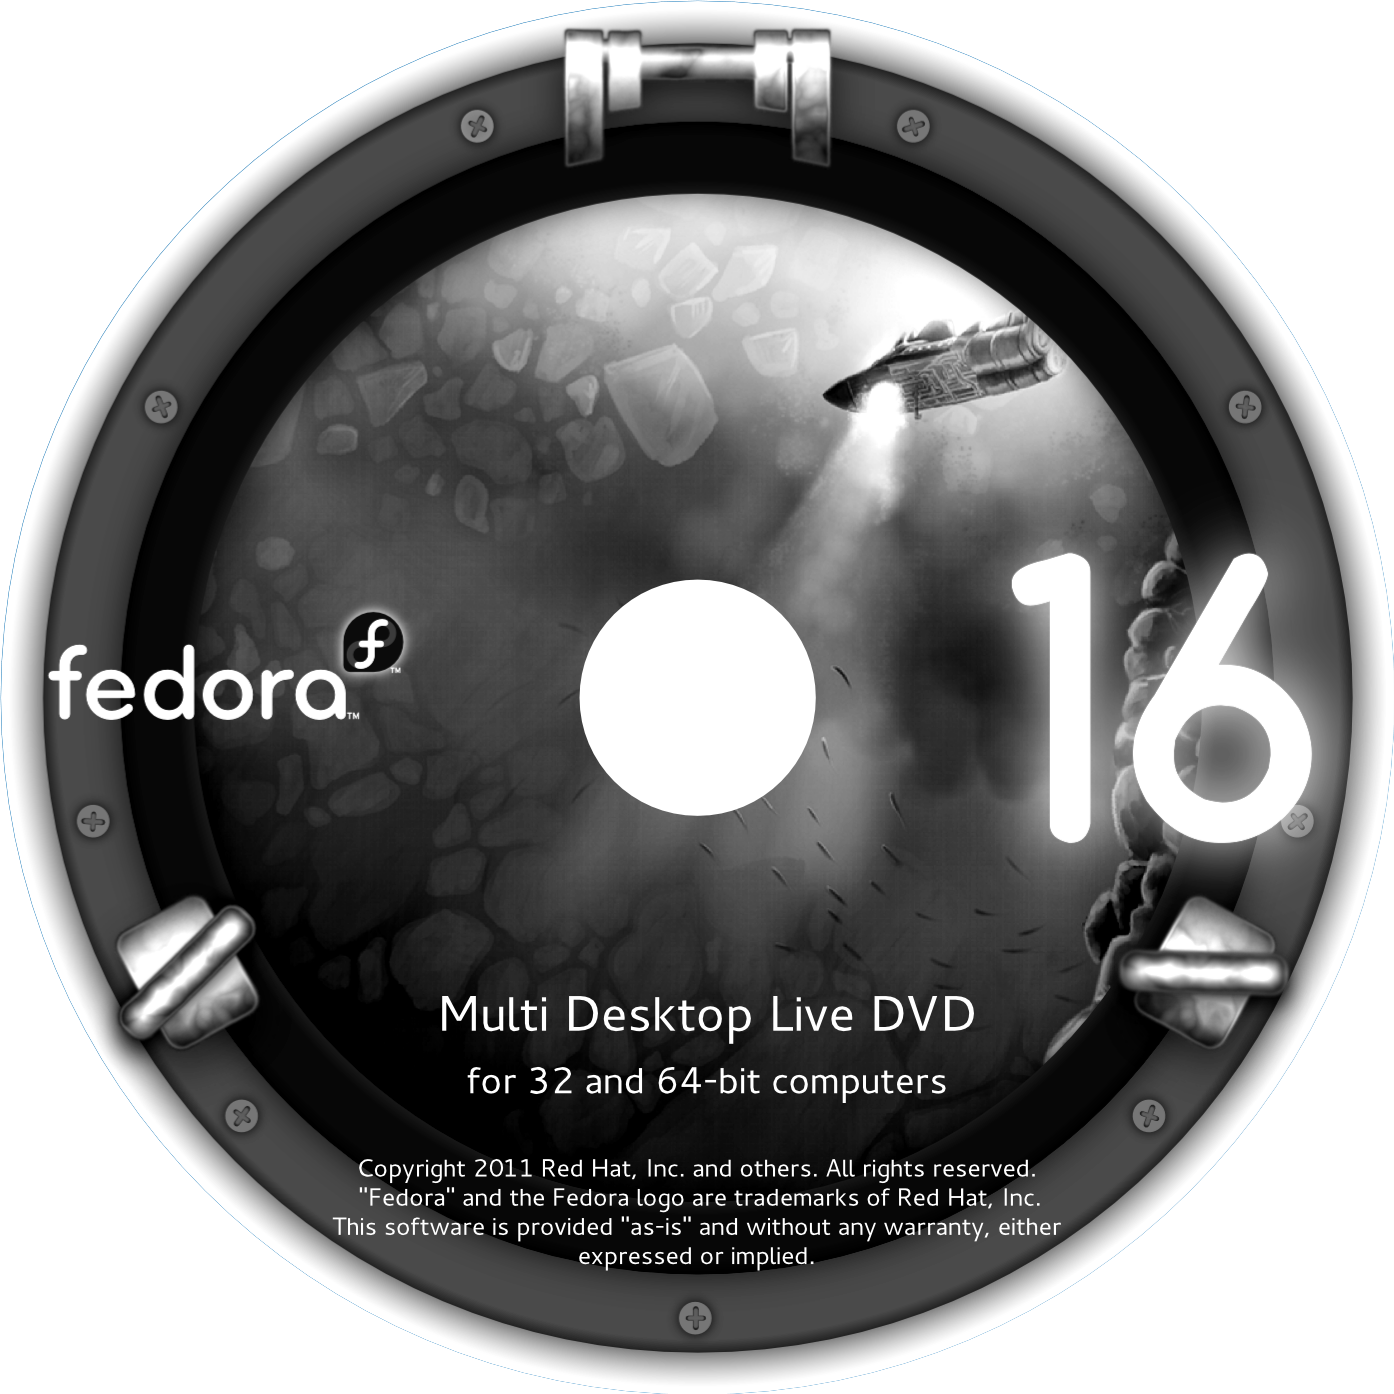 Fedora-16-livemedia-multi-label-ls.png